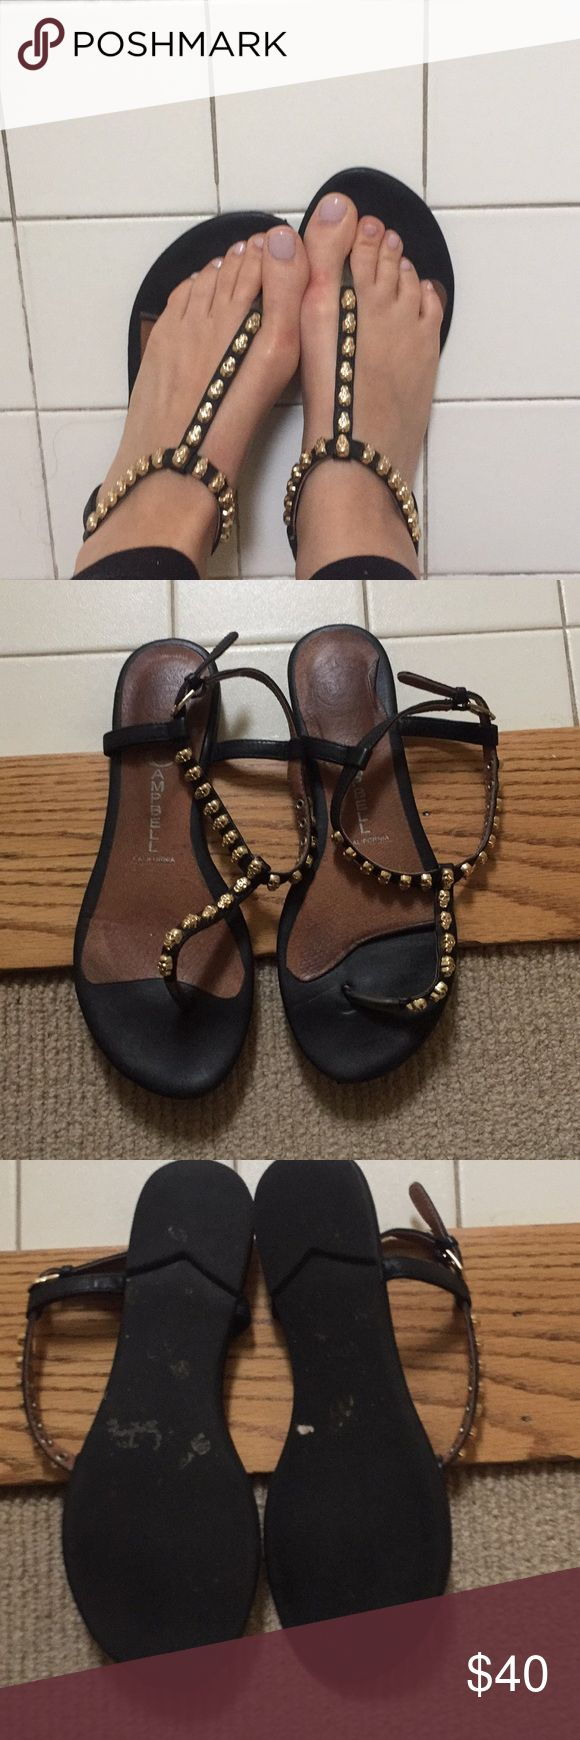 Jeffrey Campbell sandals with skull studs Jeffrey Campbell sandals black with gold skull studs. Size 6.5 but I am a 6 and they fit me Shoes Sandals